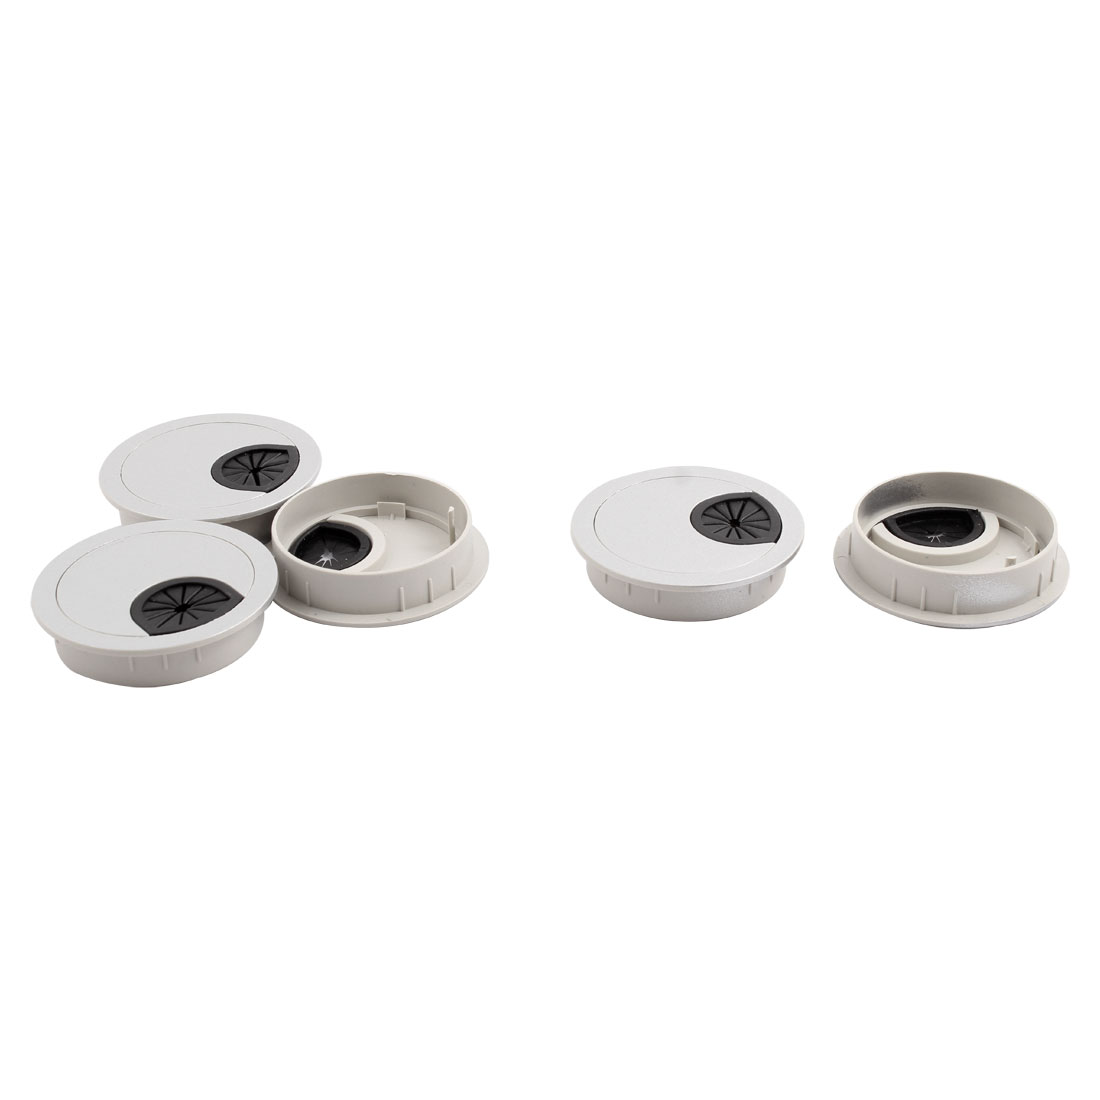 Office Computer Table Plastic Round Grommet Wire Cable Hole Cover Silver Tone 60mm Dia 5pcs